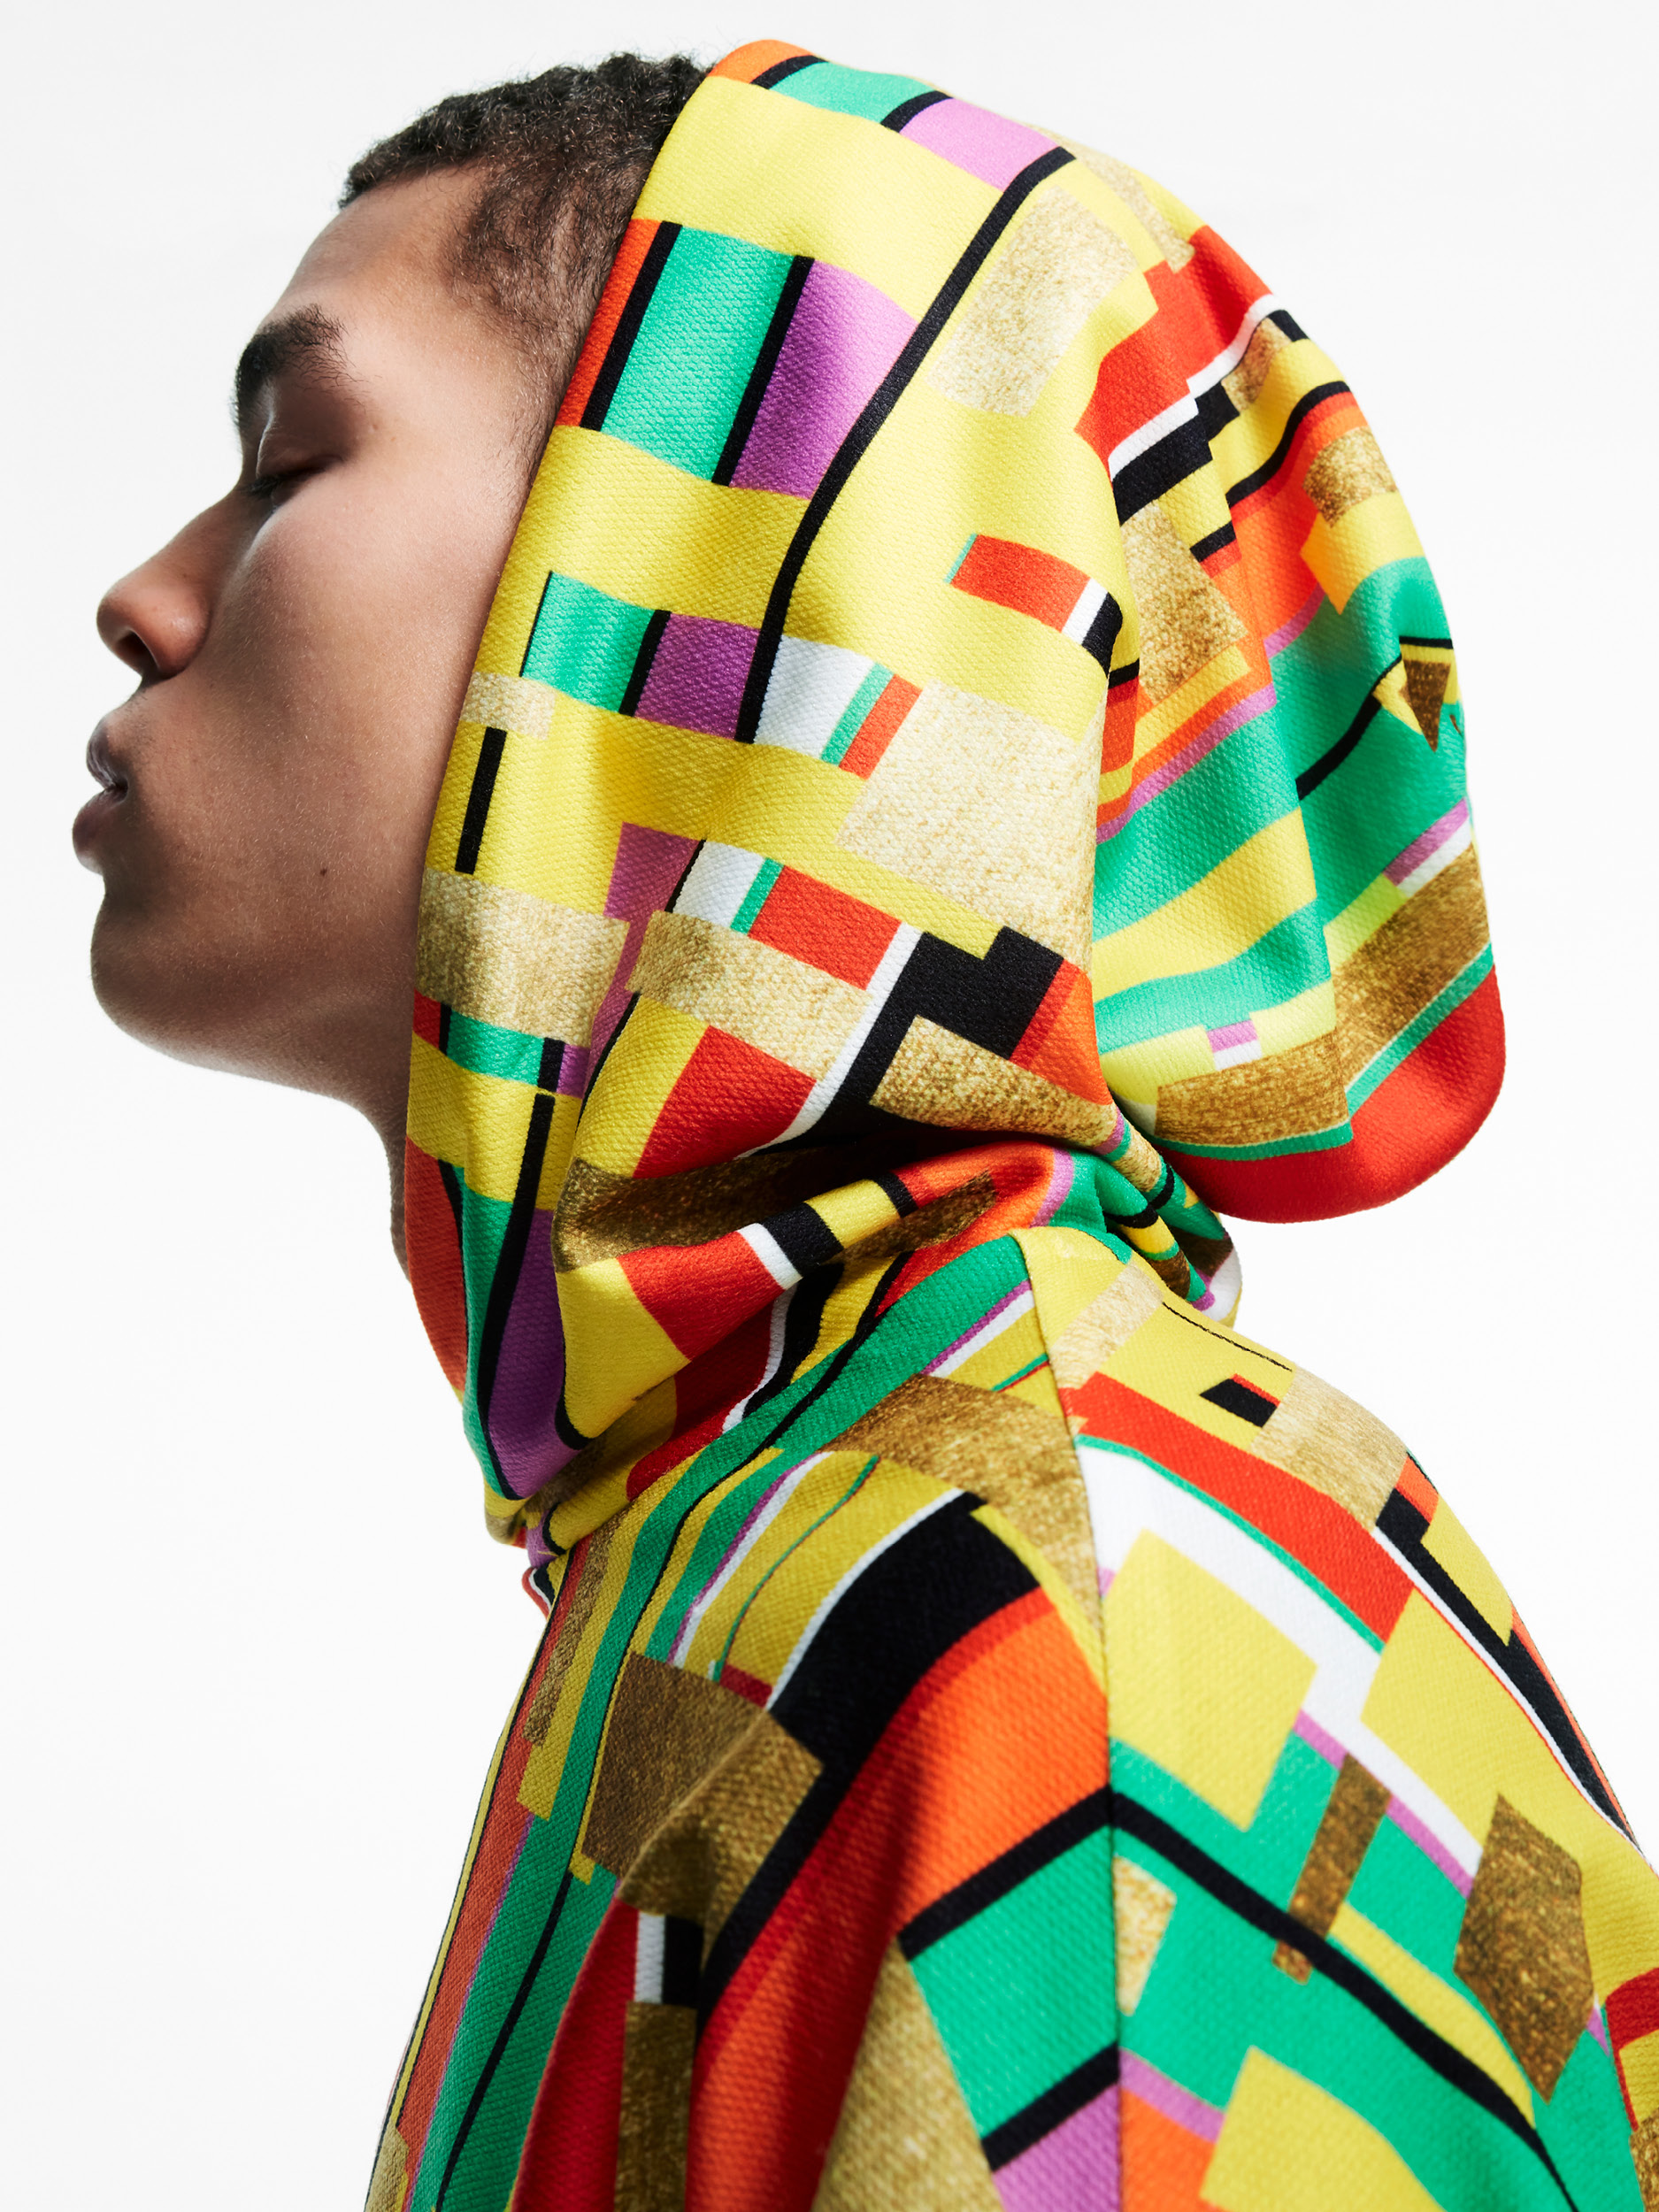 ASOS Launch 'Made in Kenya' Collection